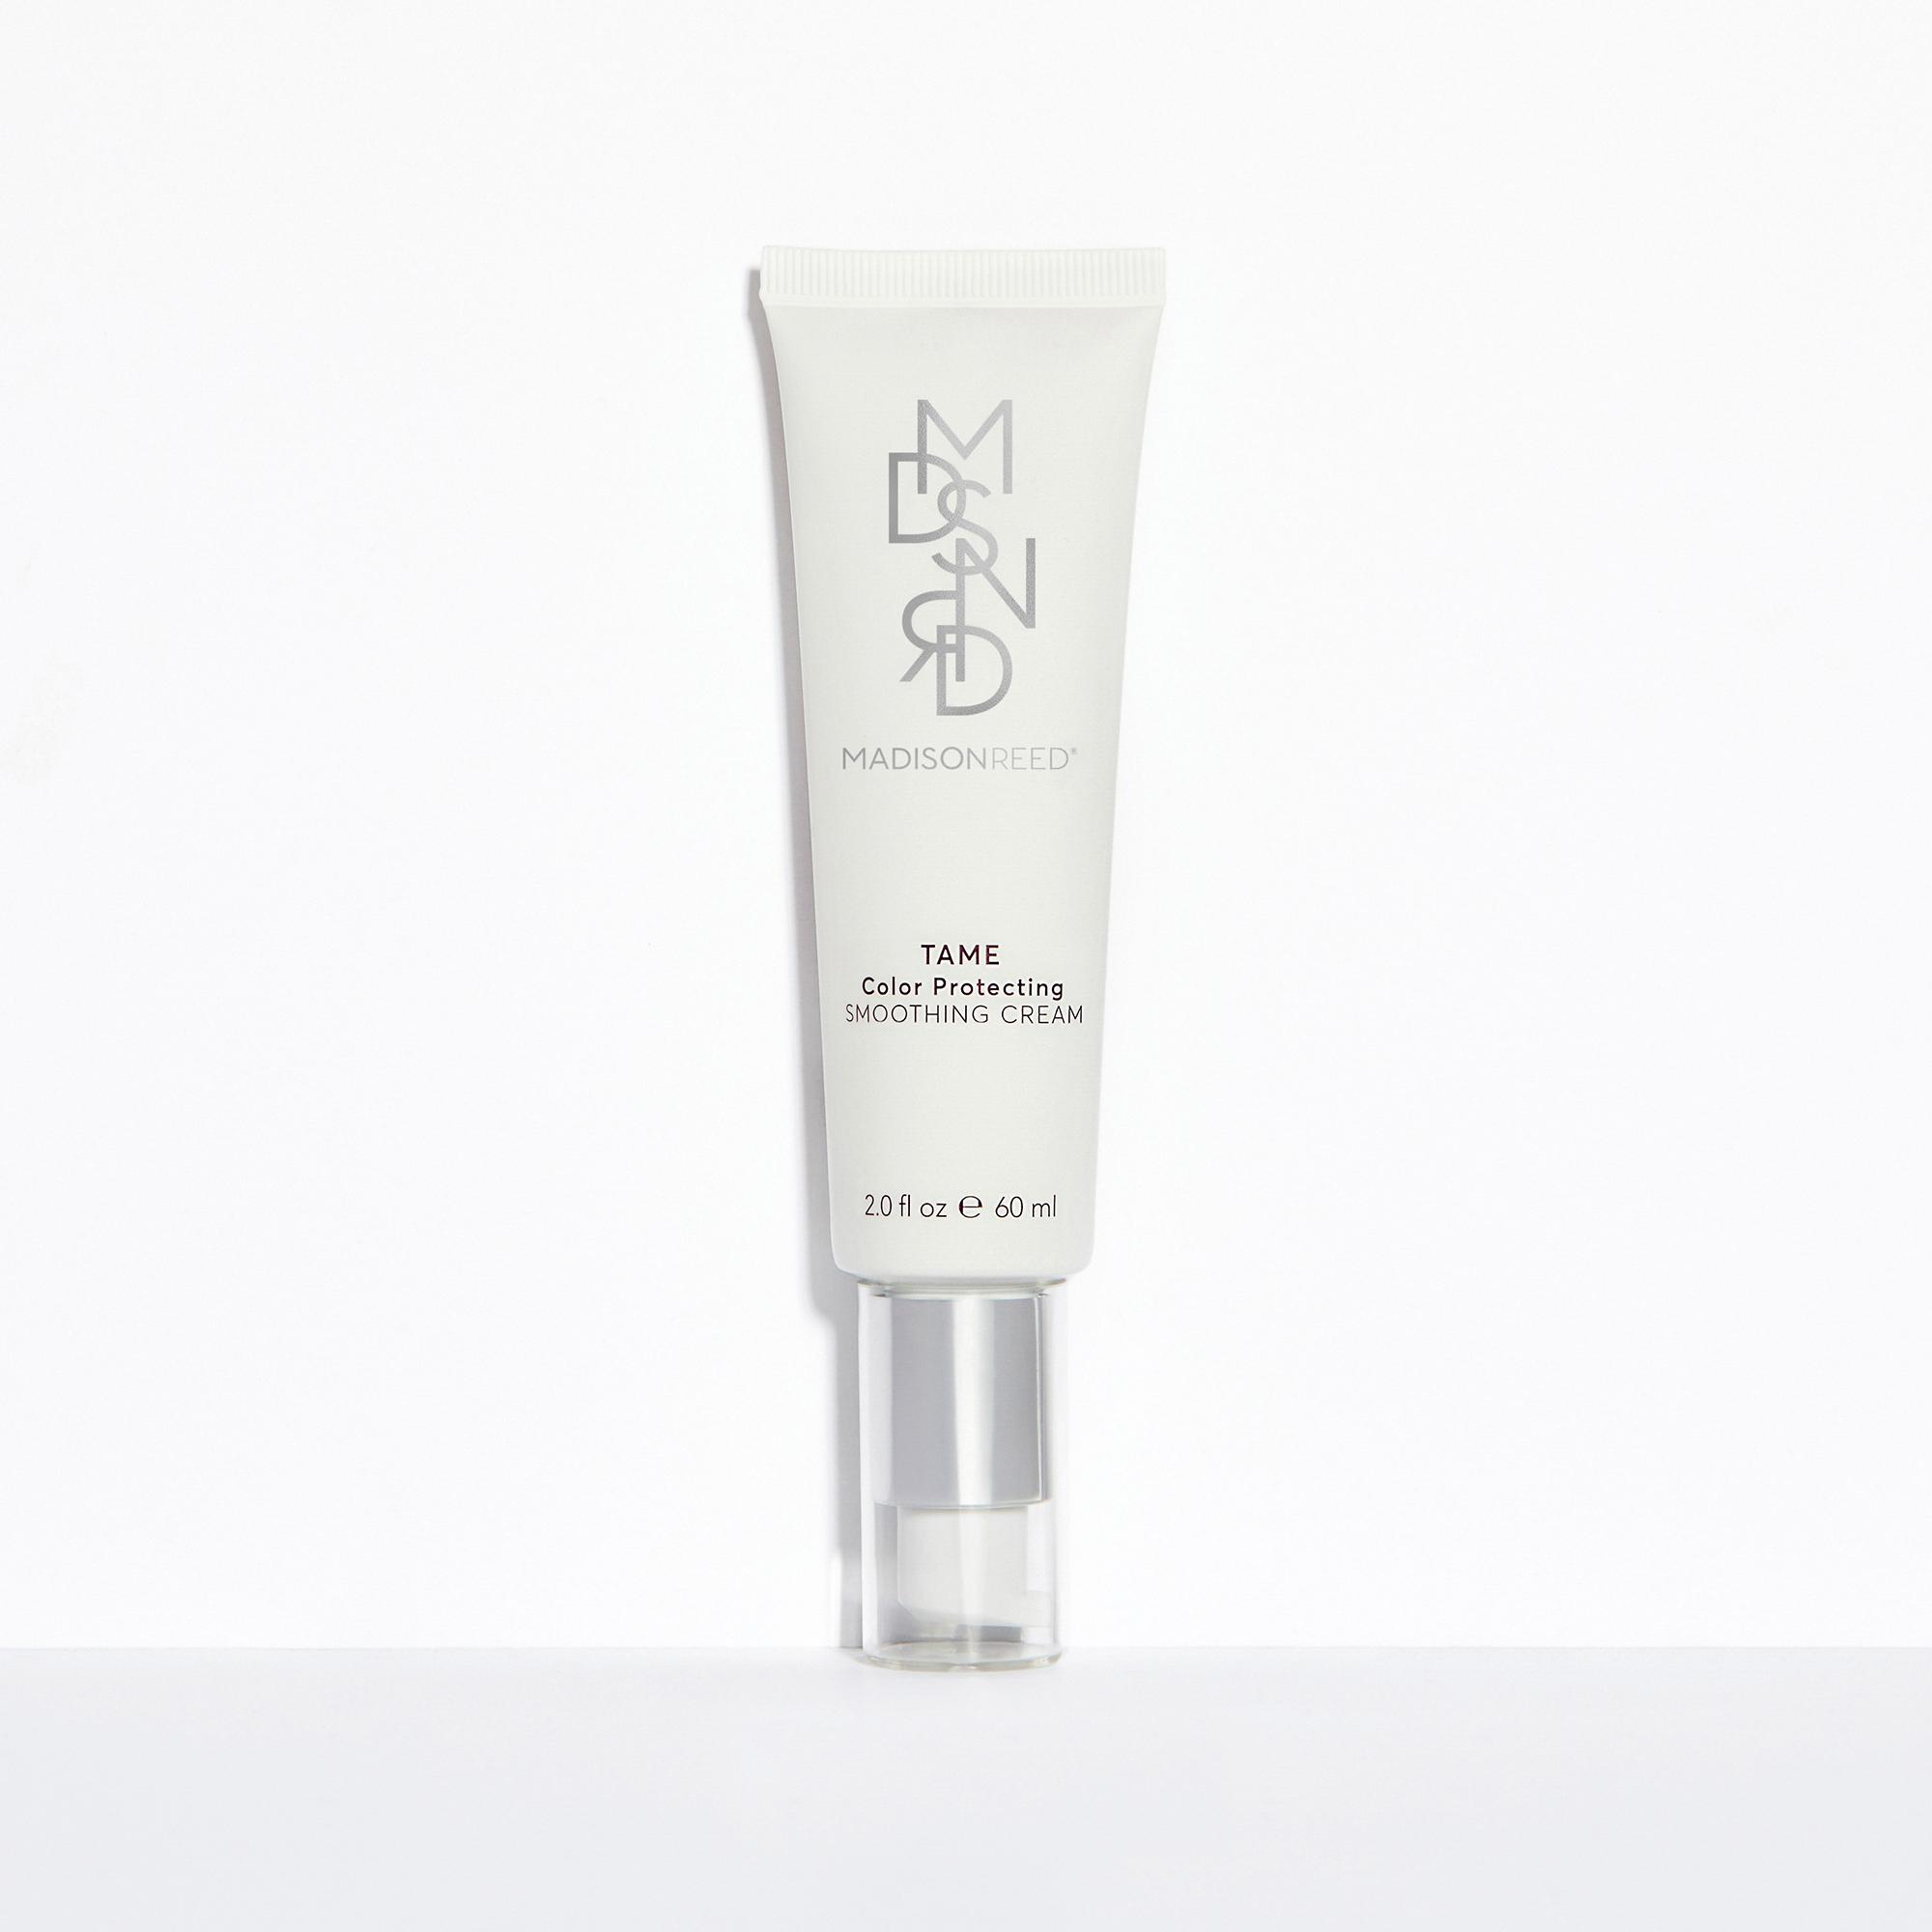 pdp tame bottle cosmetics